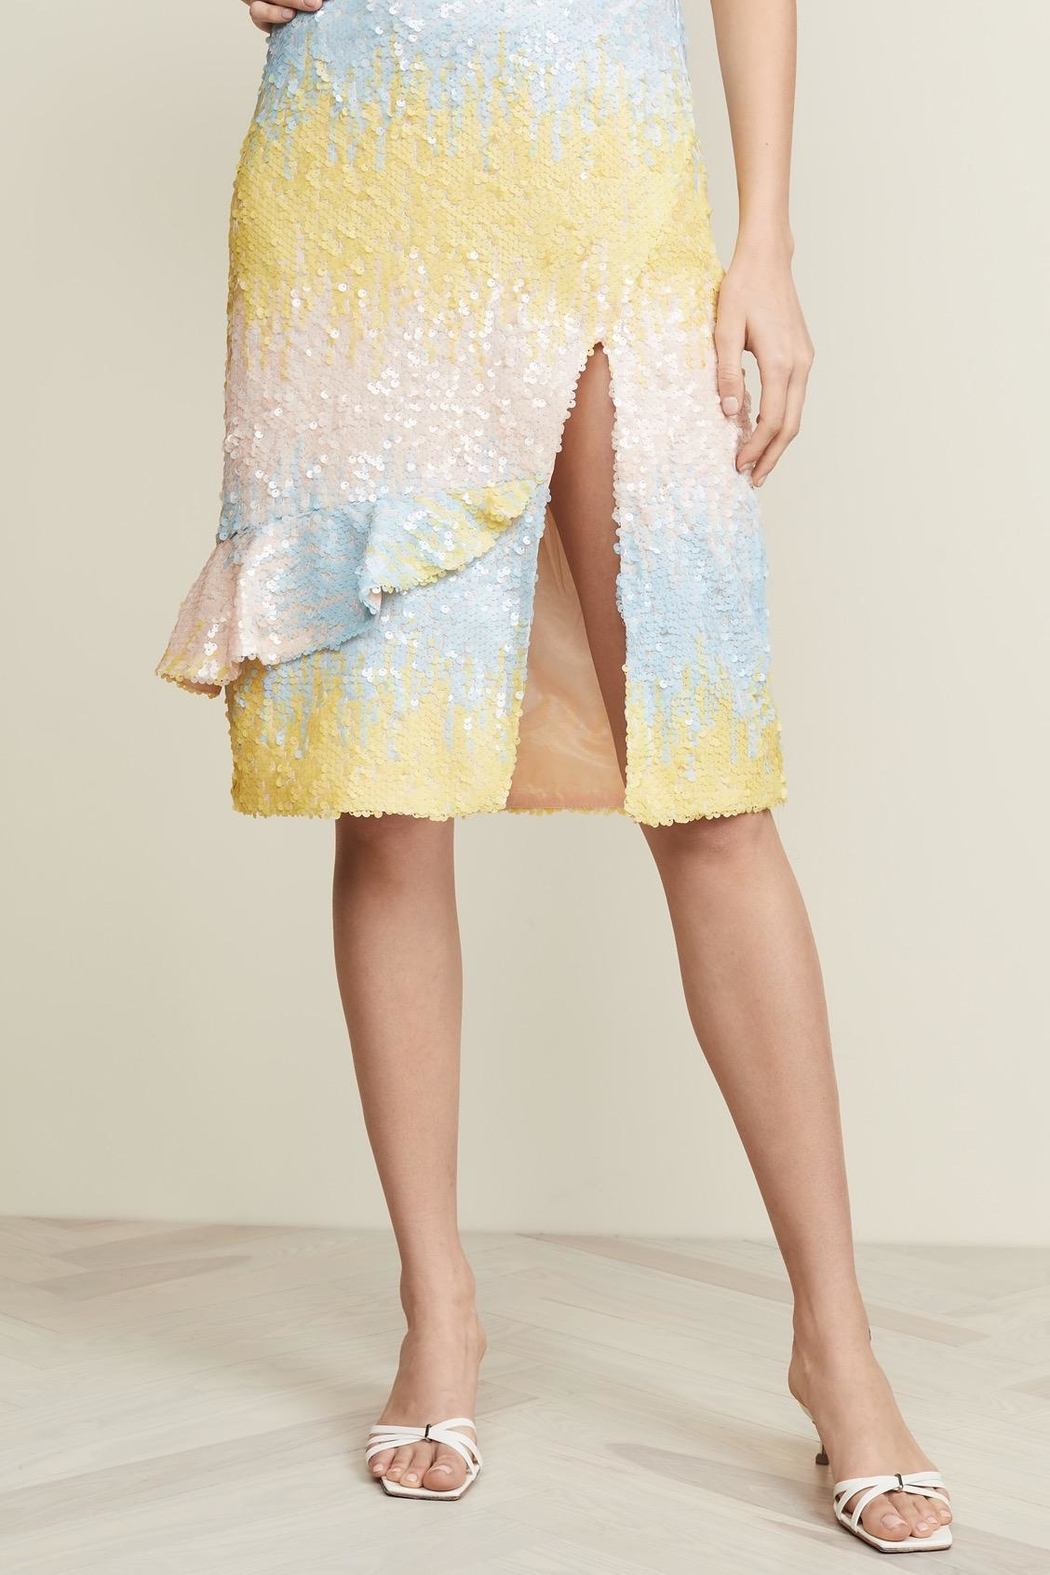 Endless Rose Ombre Sequin Skirt - Main Image